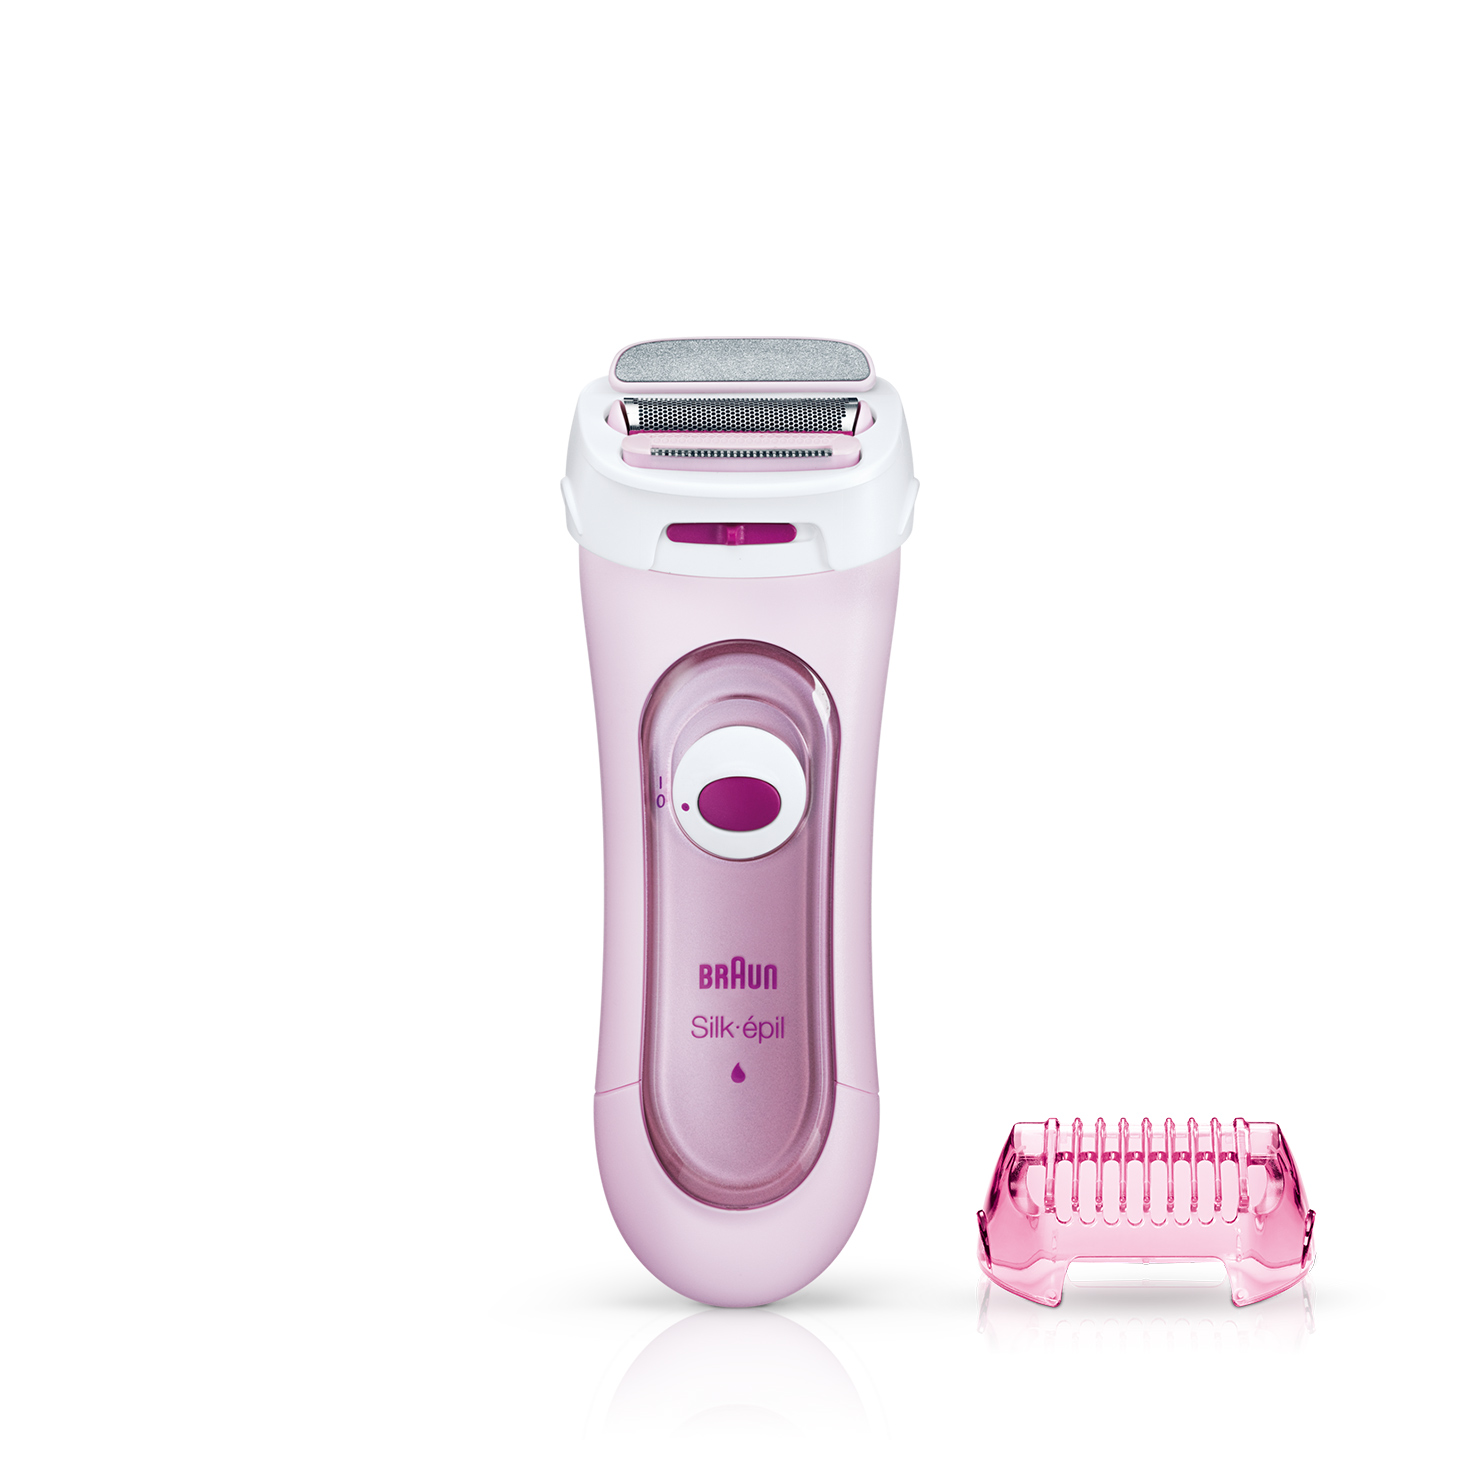 Braun Lady Shaver - 5360 Electric Shaver including Exfoliation Attachment